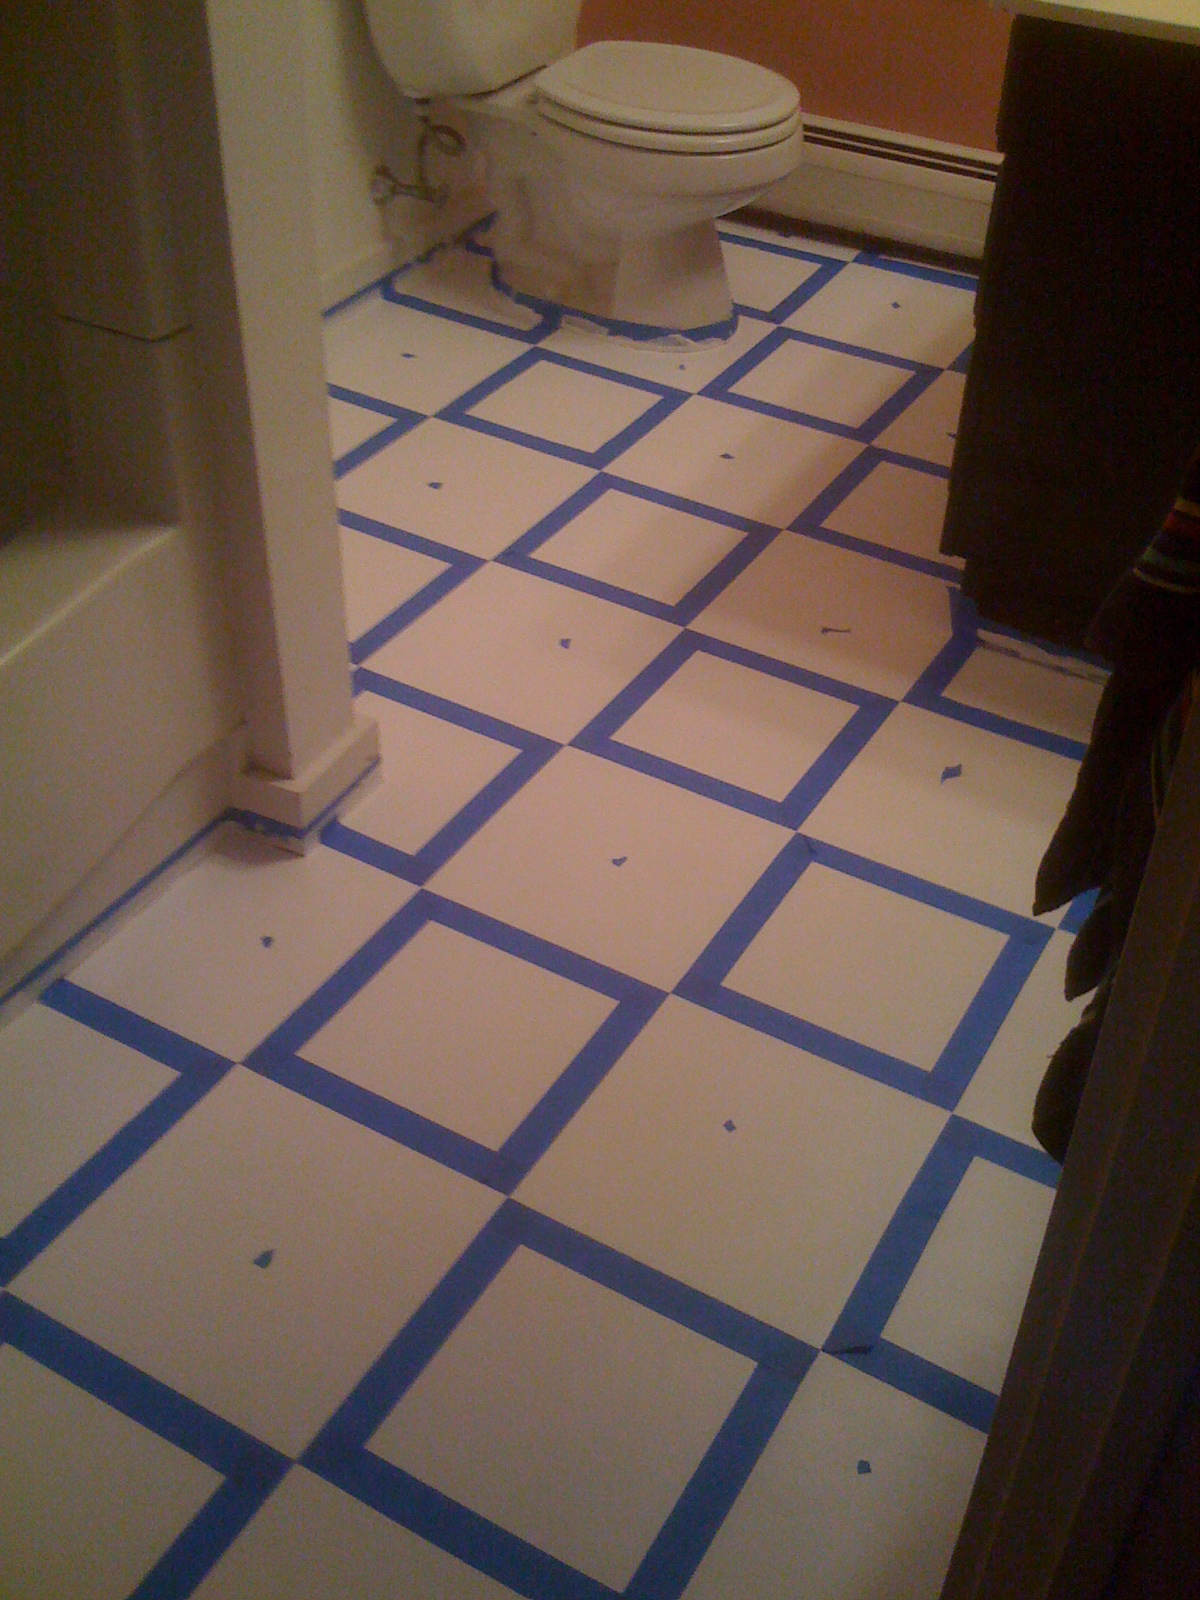 Diy painting old vinyl floor tiles mary wiseman designs for Can you paint over vinyl flooring